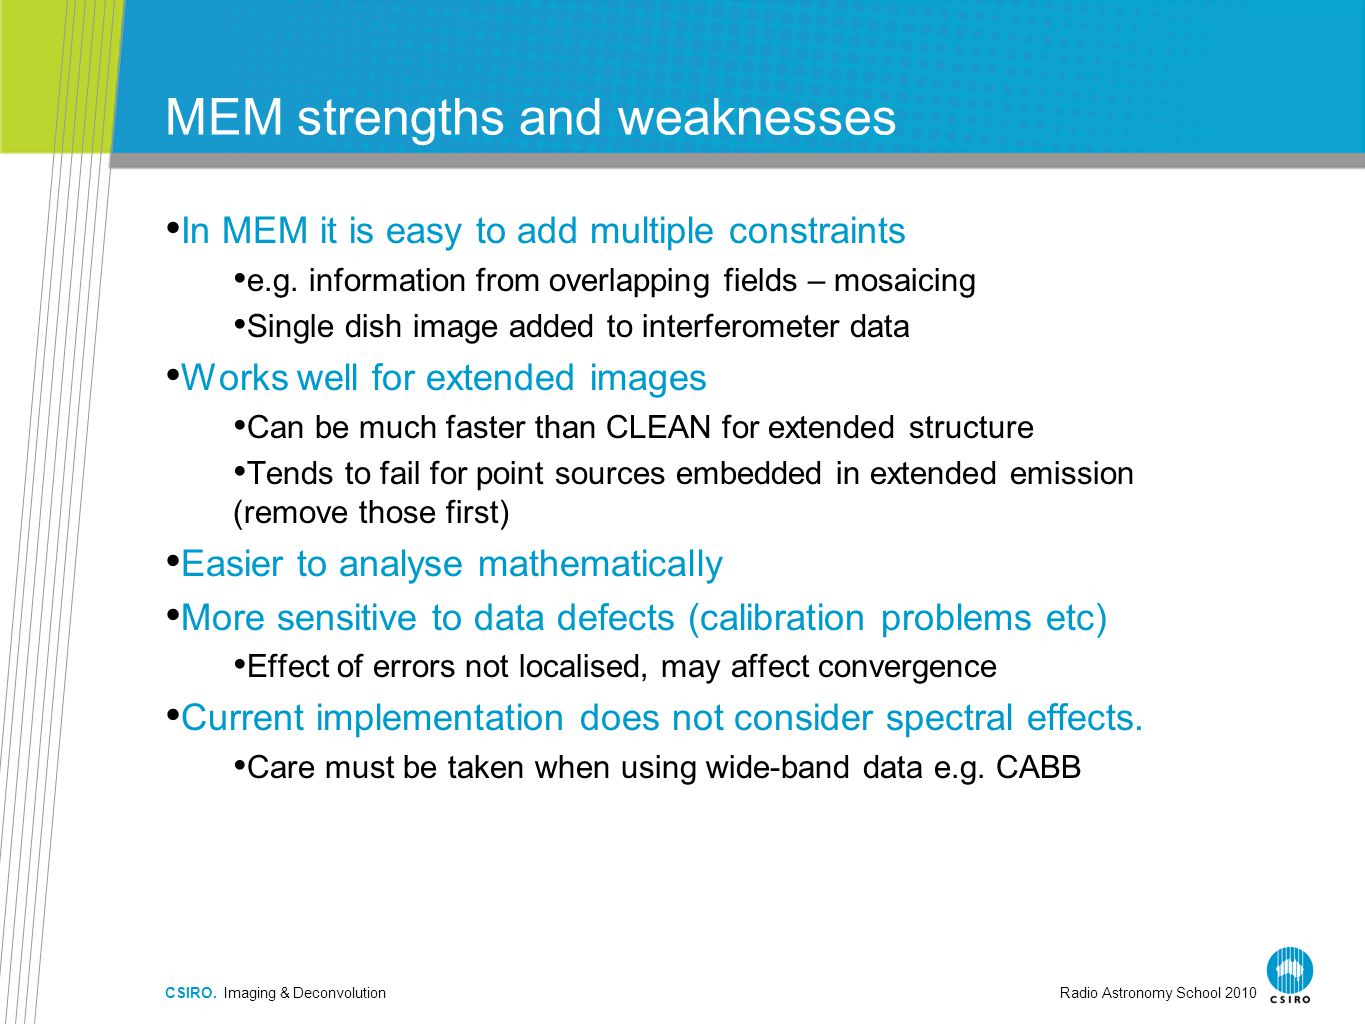 CSIRO. Imaging & DeconvolutionRadio Astronomy School 2010 MEM strengths and weaknesses In MEM it is easy to add multiple constraints e.g. information